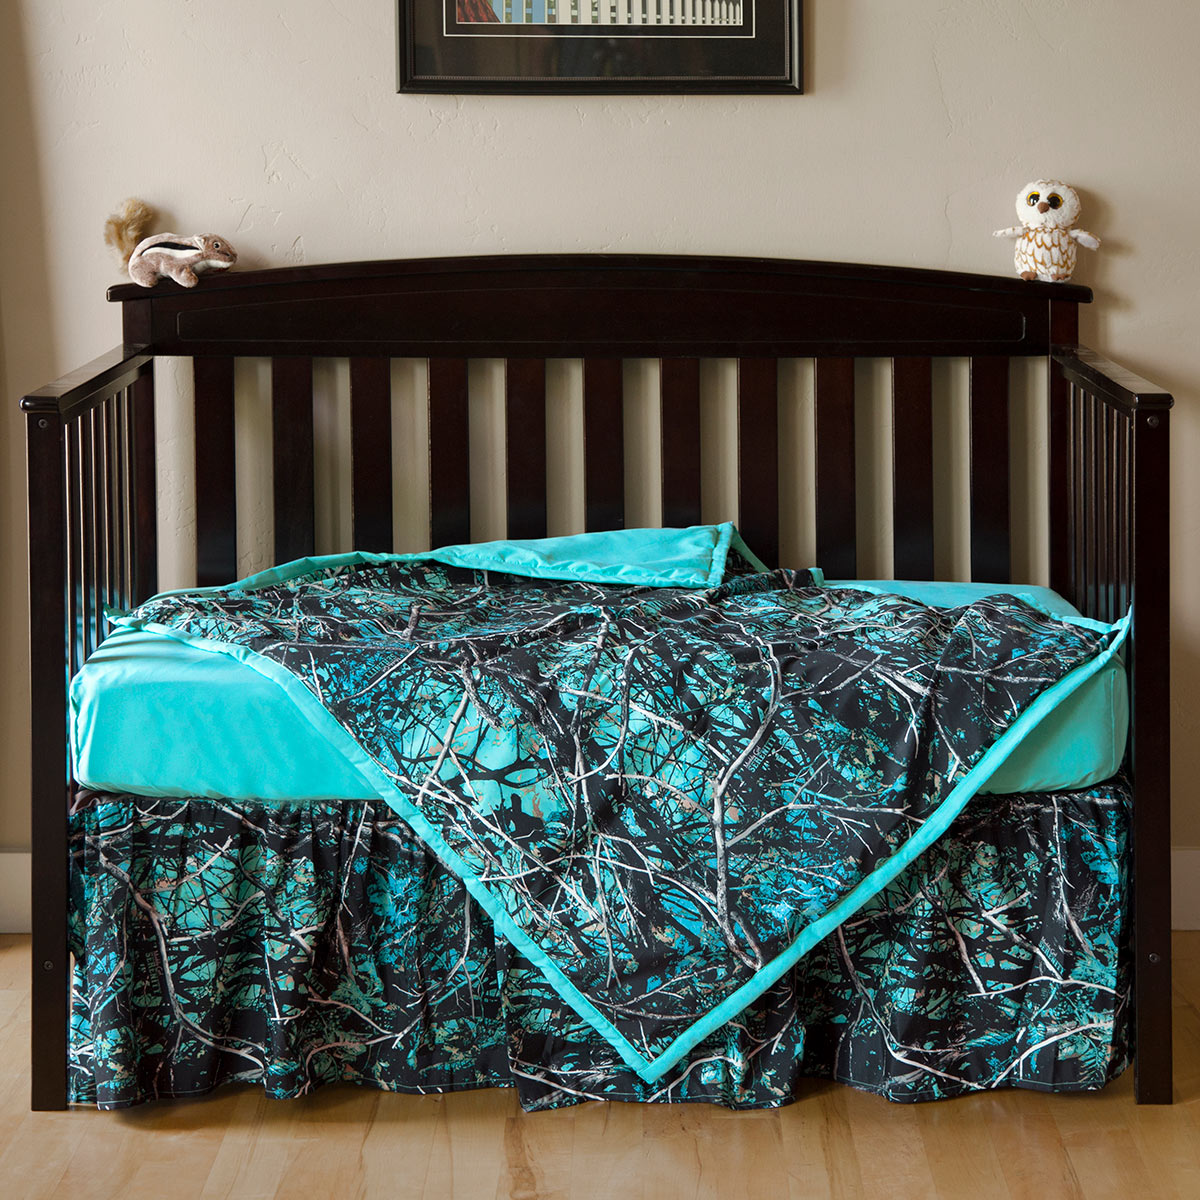 Calm Camo 3 Piece Crib Set